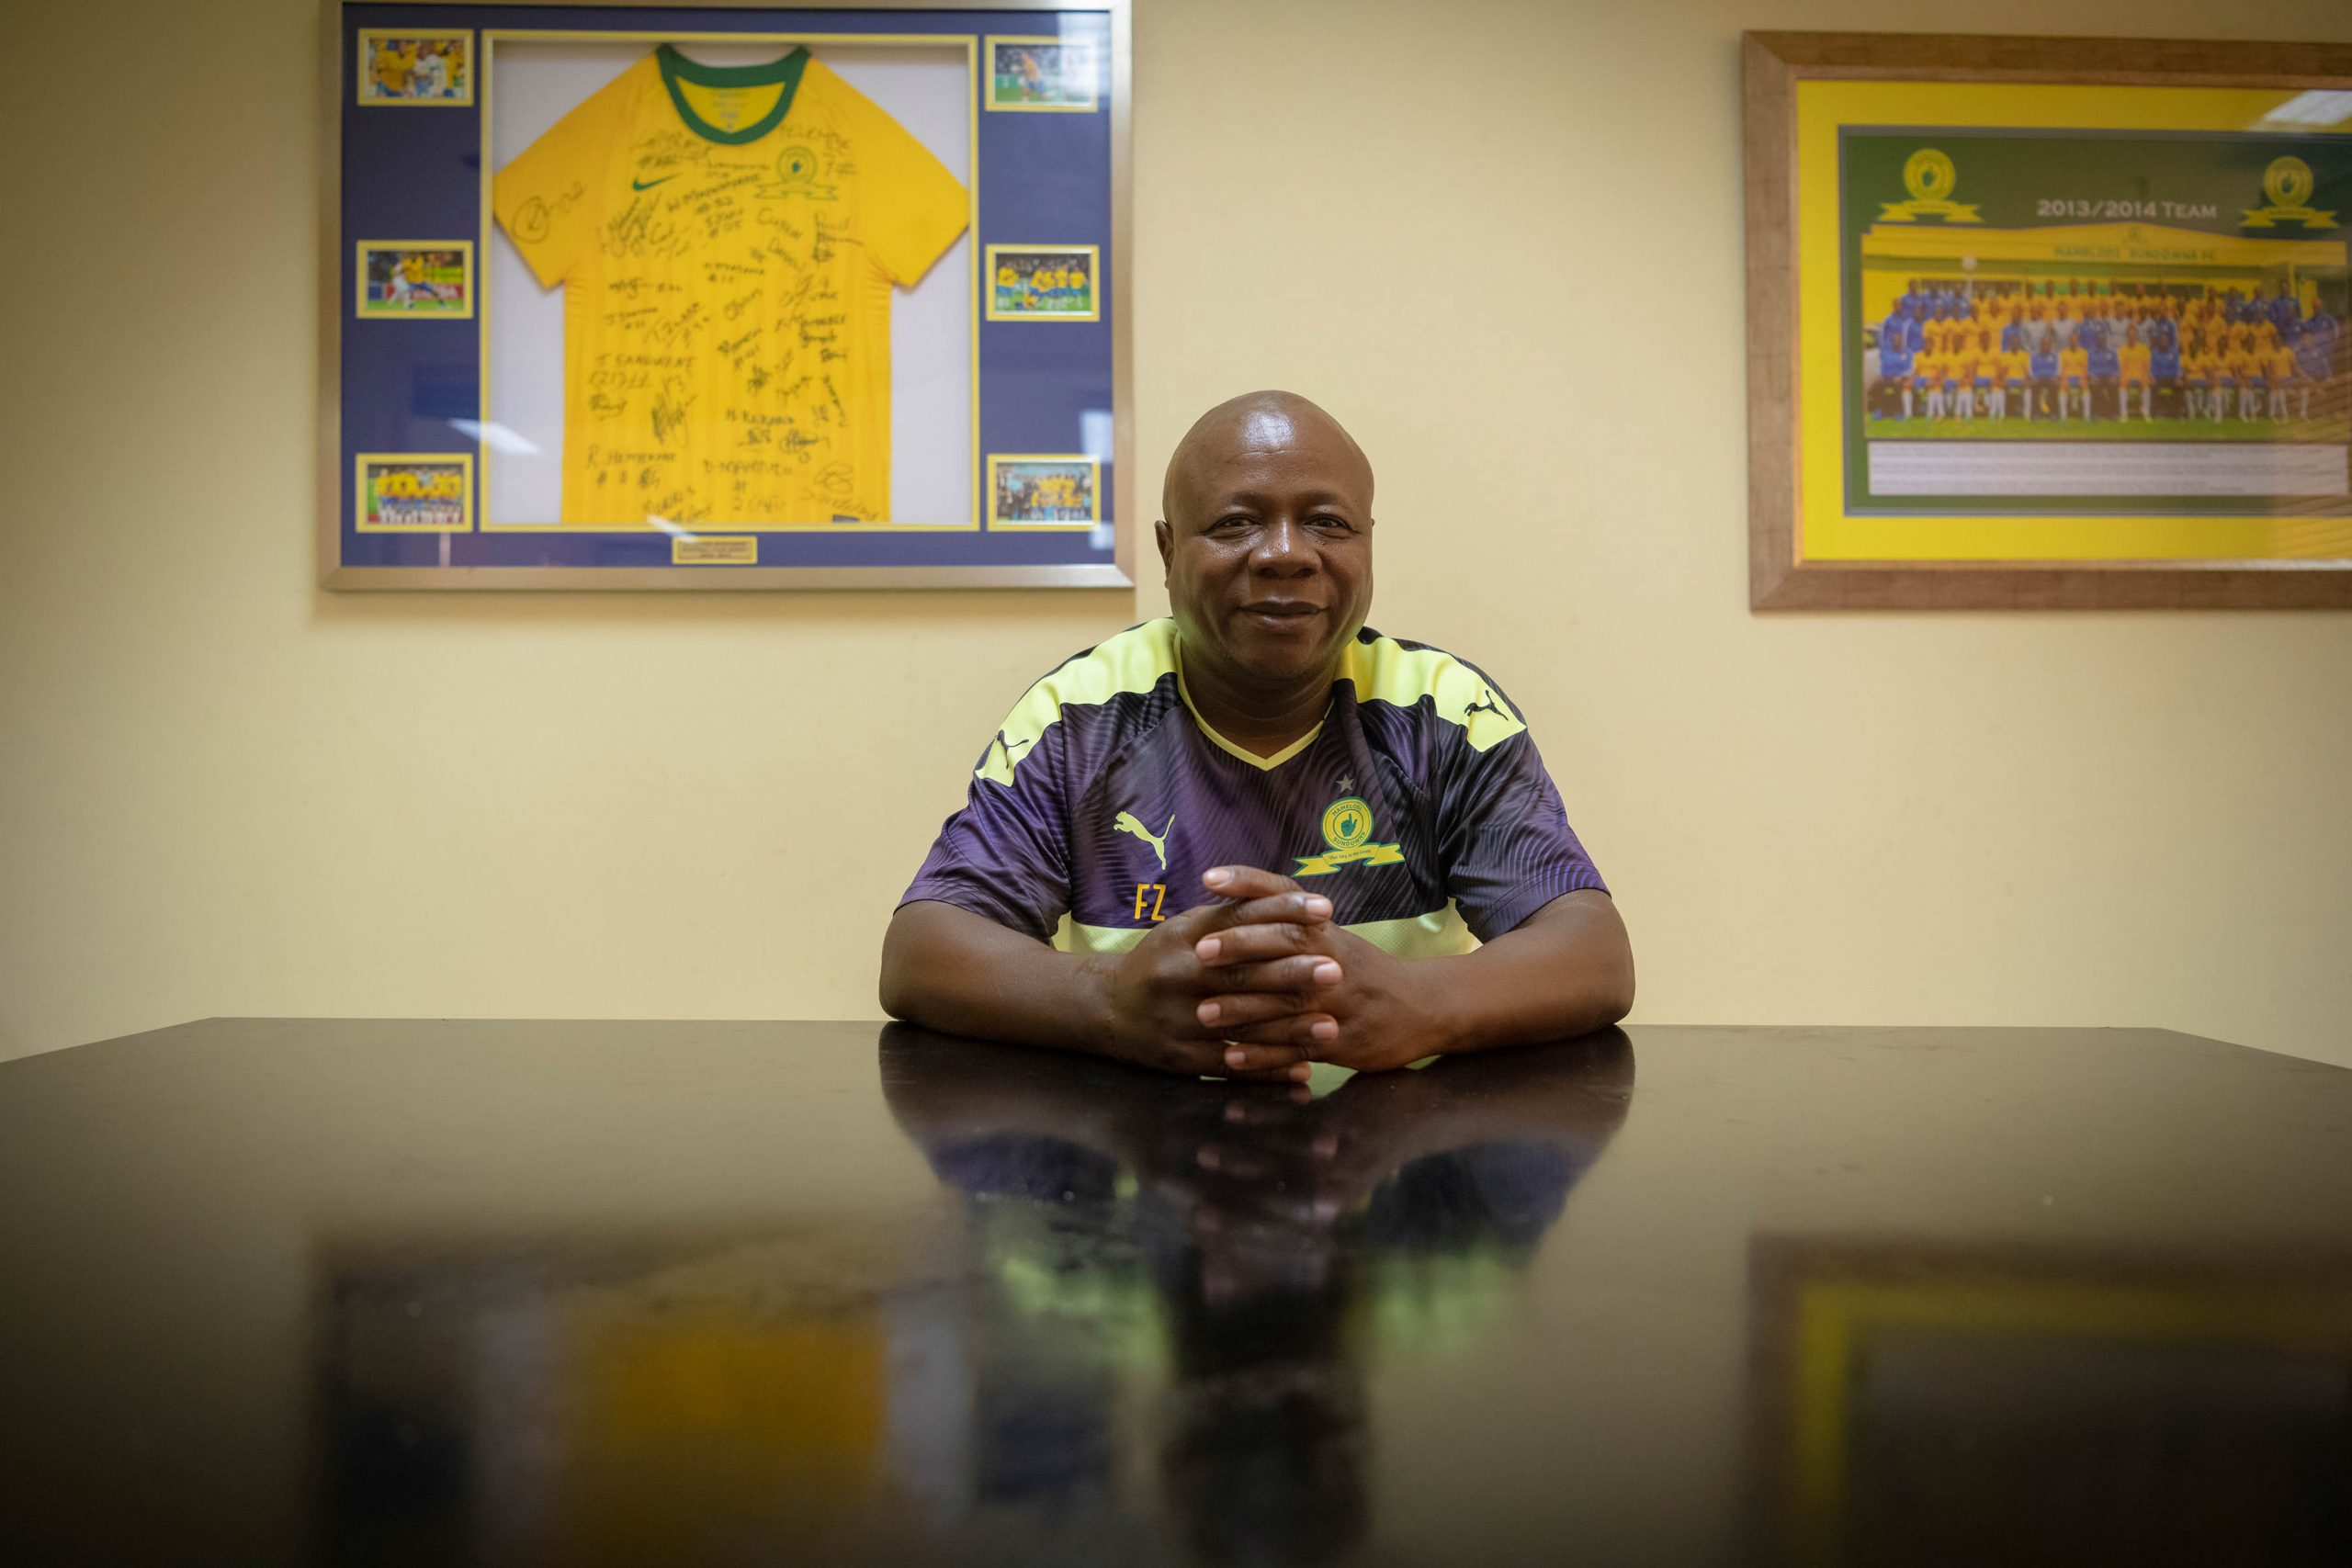 20 February 2020: Freddy Zungu started at Sundowns as a volunteer in 1990 and became a permanent staff member at the football club the following year.